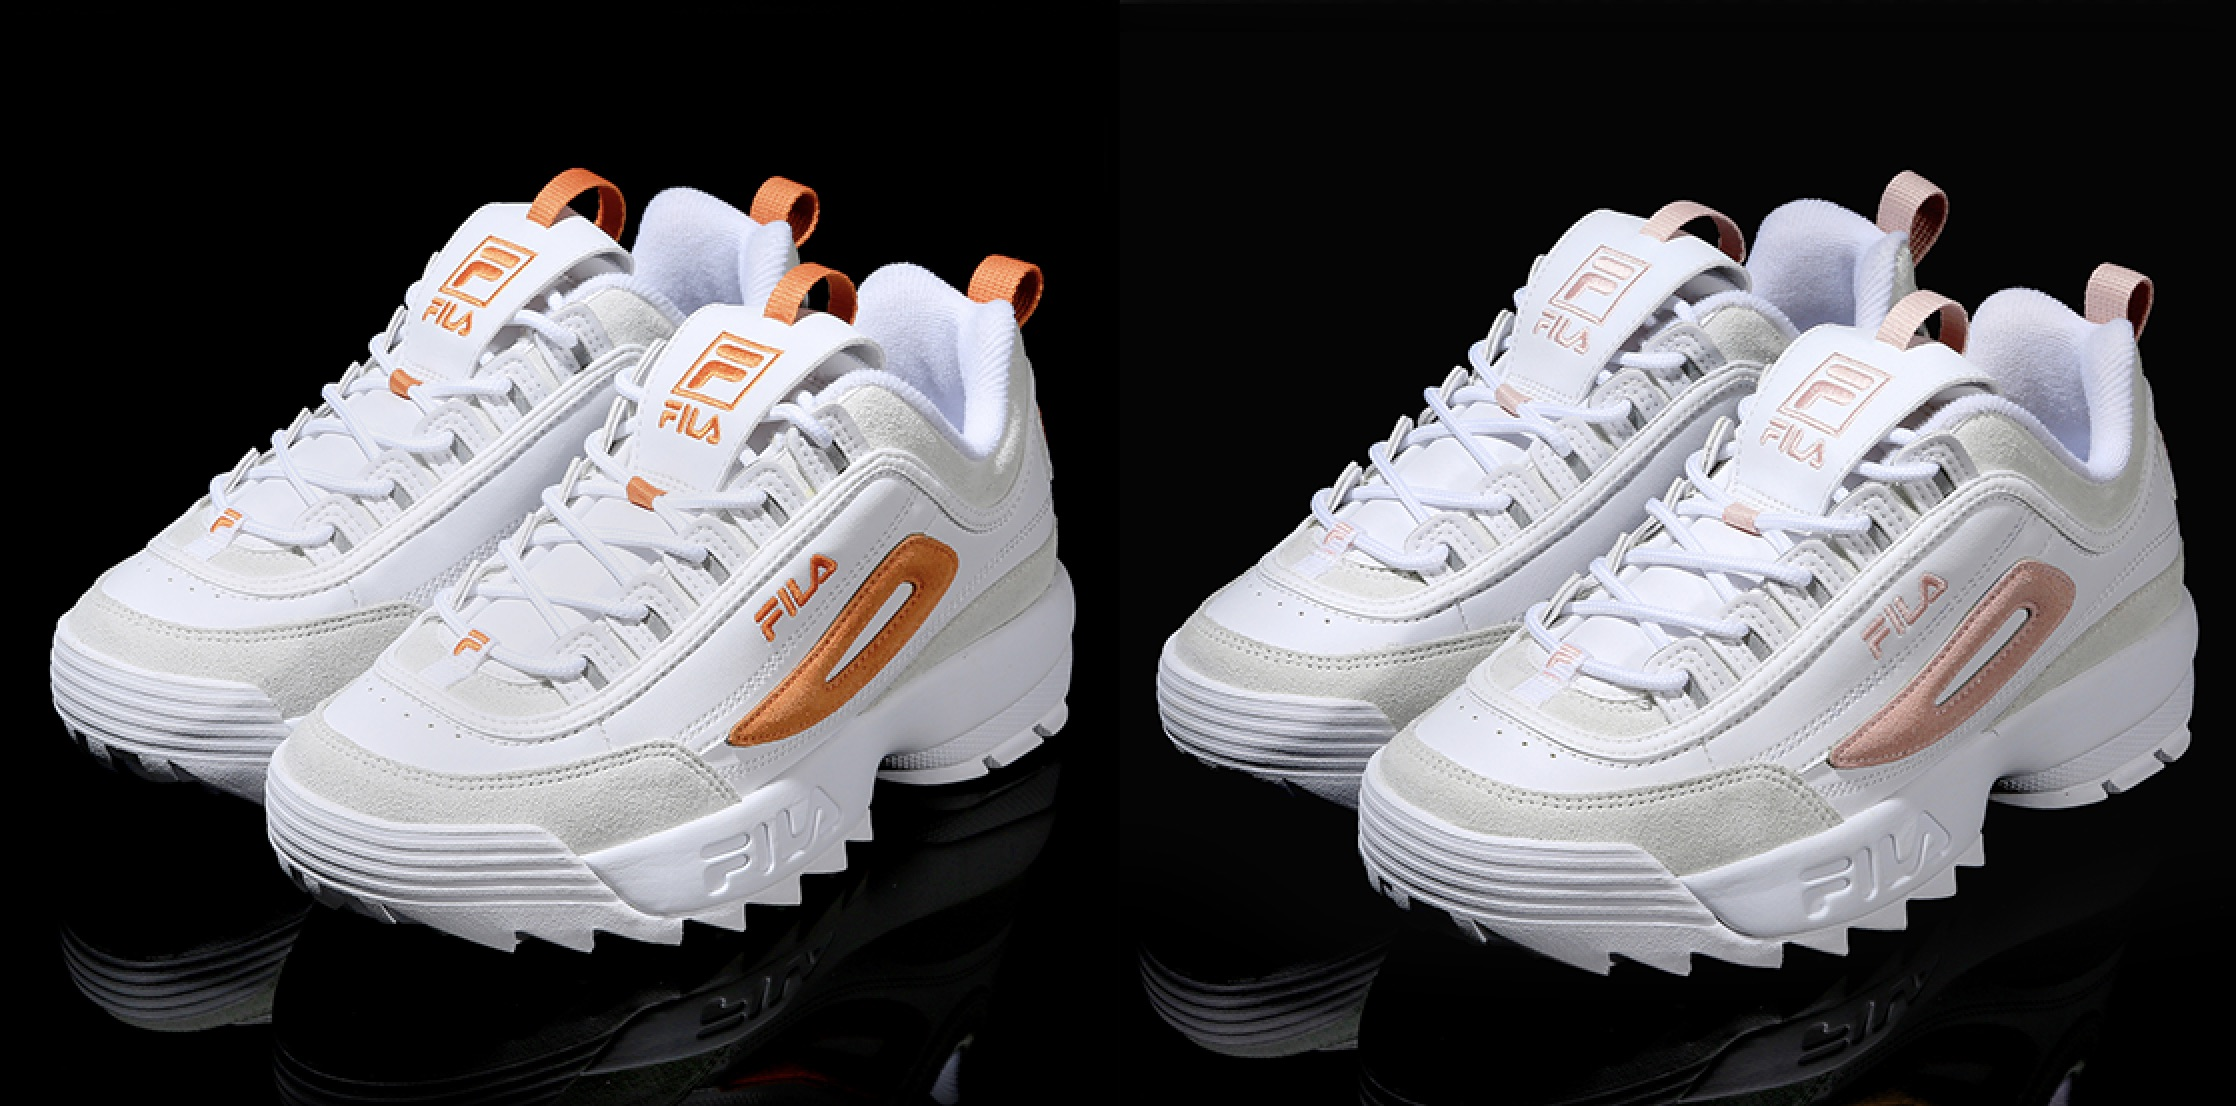 Ii And Disruptor The Over Pink Orange Take Hues Look Fila Closer 6Wwd8dq